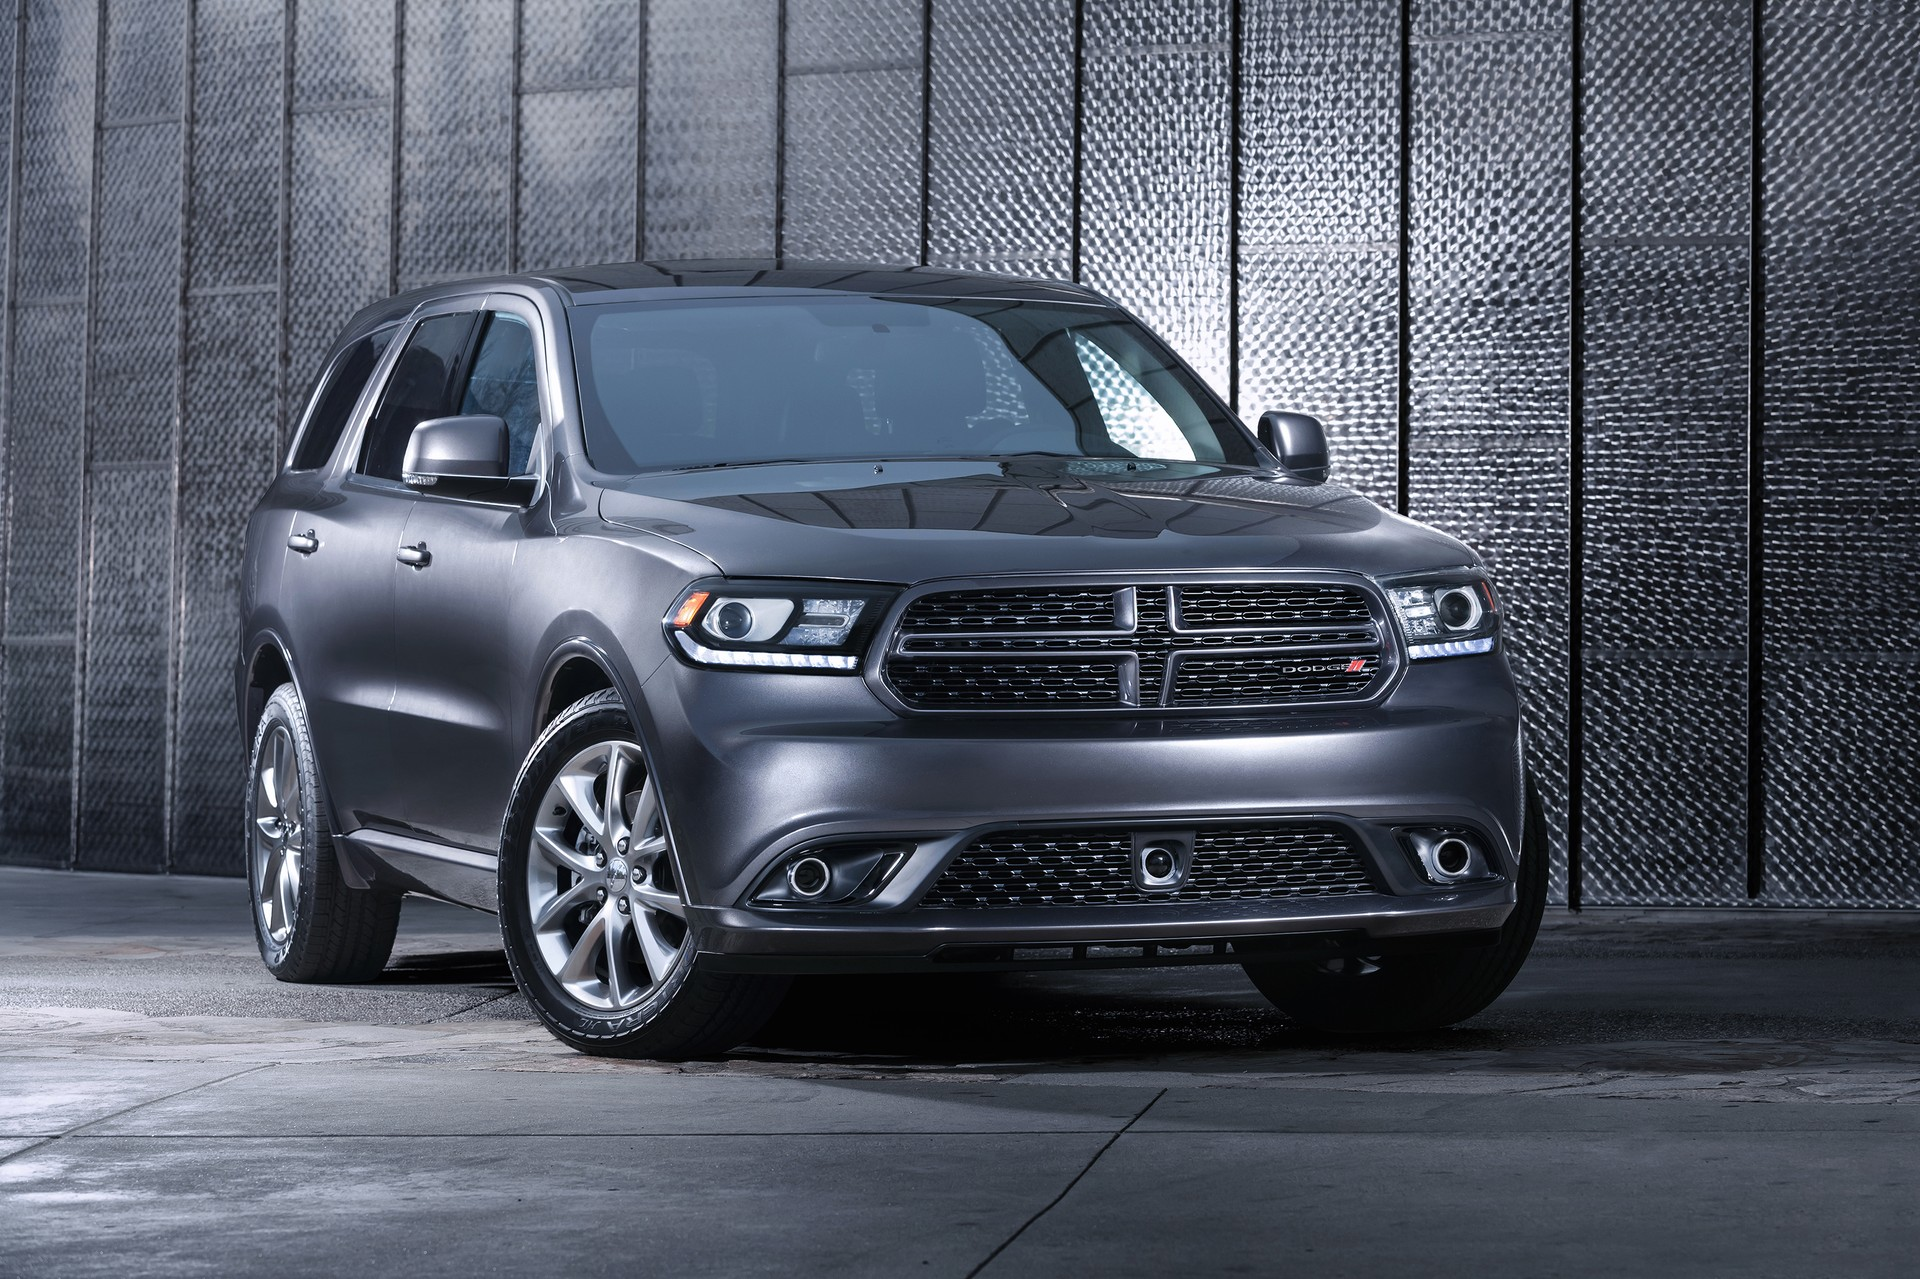 2015 Dodge Durango Review, Ratings, Specs, Prices, and ...